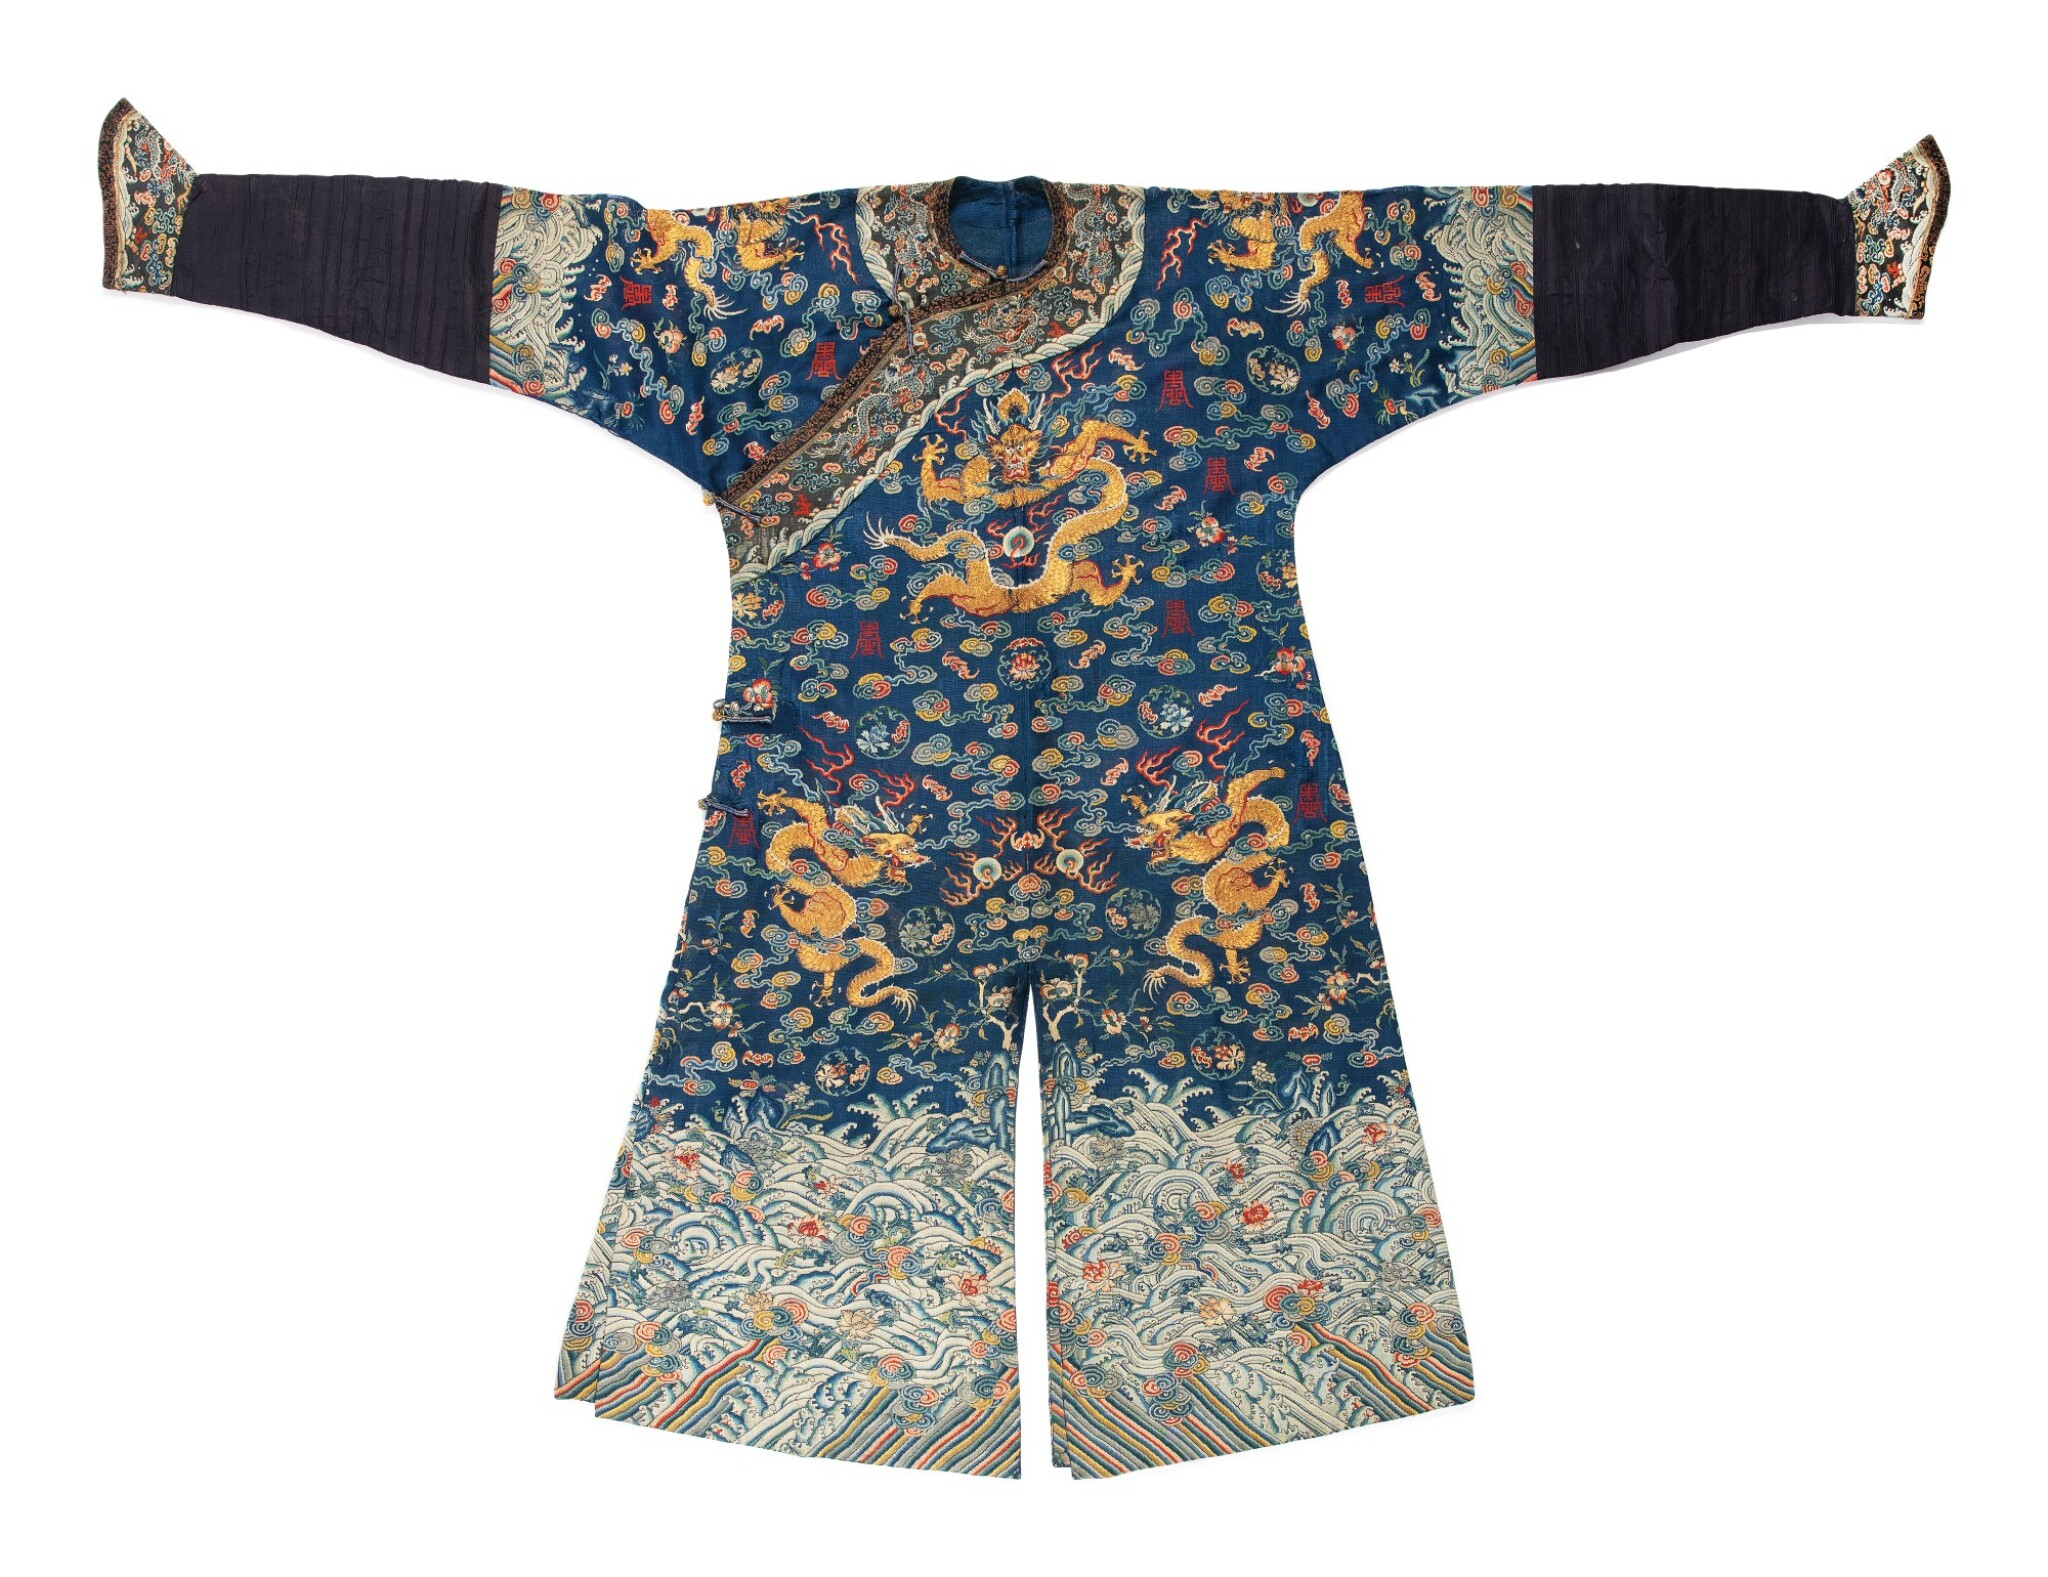 View 1 of Lot 1055. A BLUE-GROUND SUMMER GAUZE 'DRAGON' ROBE, QING DYNASTY, EARLY 19TH CENTURY.